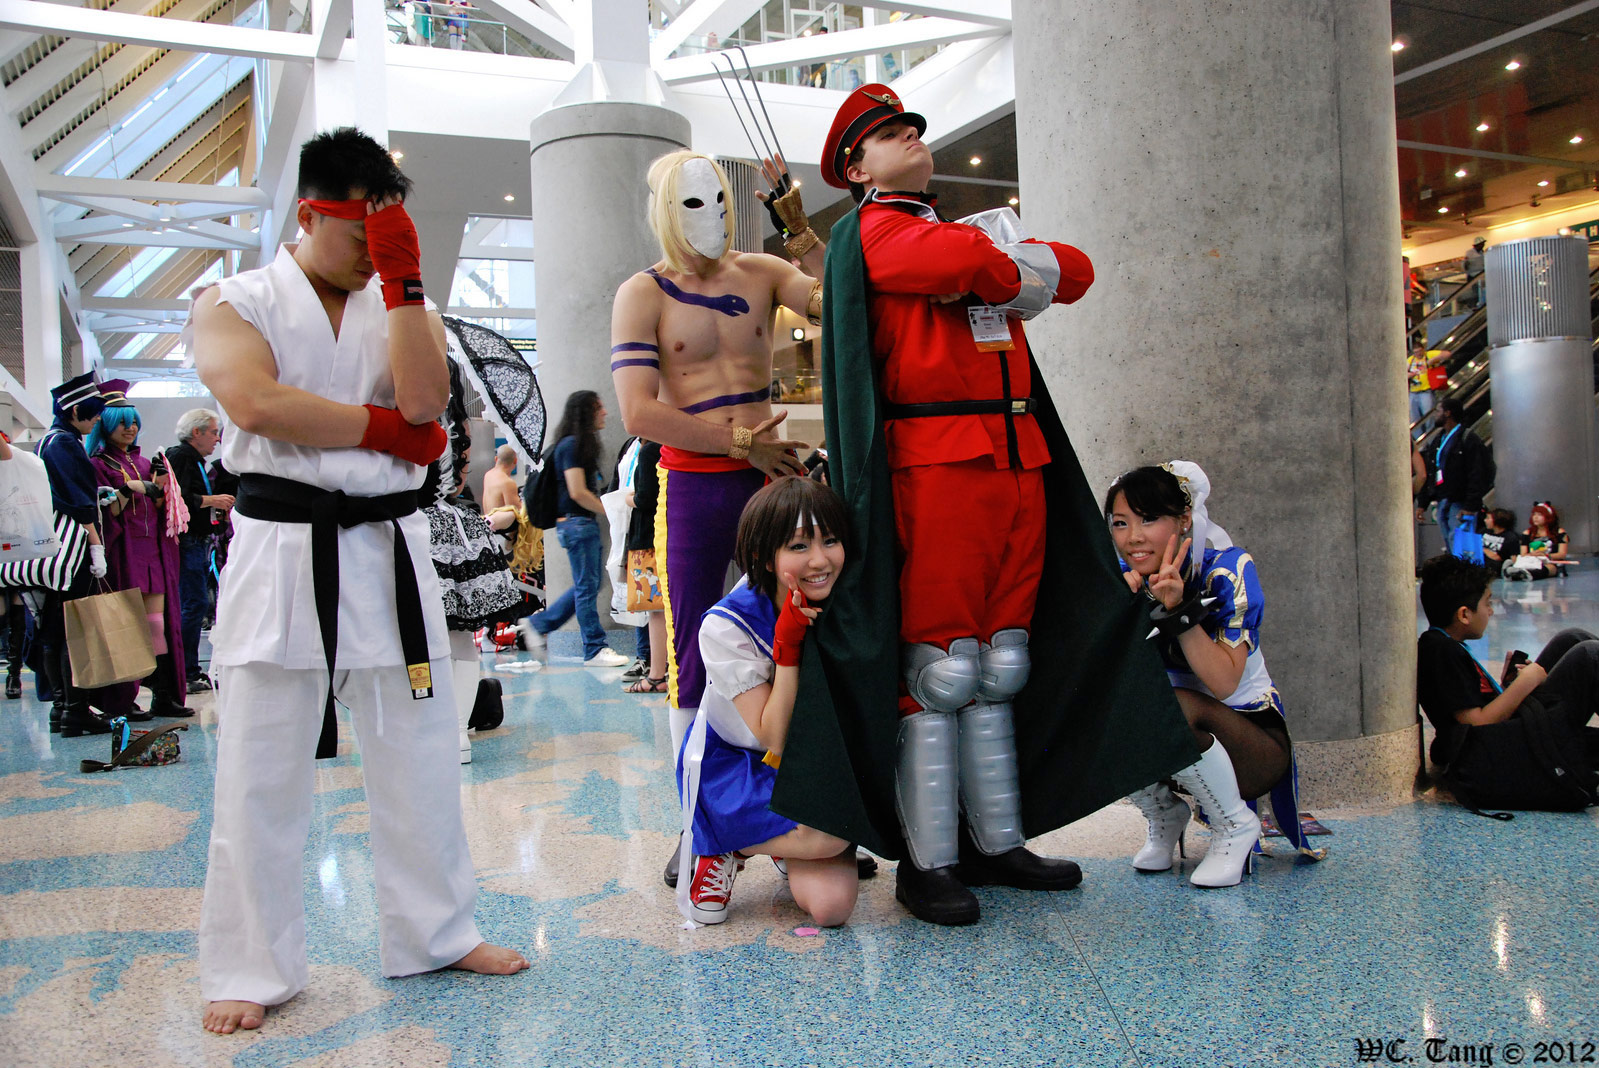 Fighting game cosplay gallery image #6